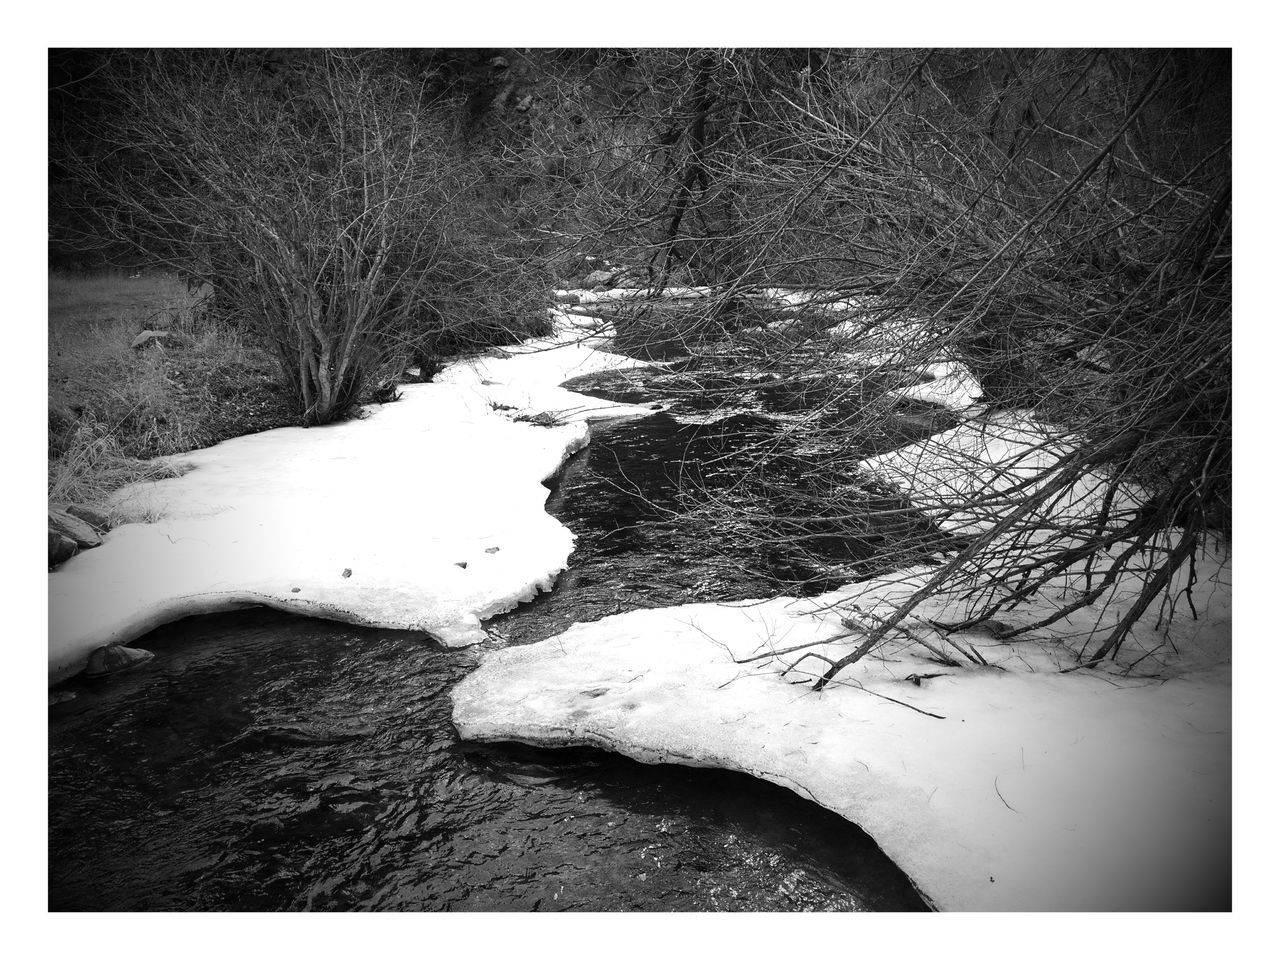 River Blackandwhite Black And White Black & White High Contrast High Angle View Textured  Abstract Backgrounds River Collection Curvy & Beautiful Snow Covered Melting Snow Melting Ice Snowy Scene Snow Covered Landscape Riverside Riverview On The River Above View Nature Branches Silhouette High Contrast Bnw High Contrast Image